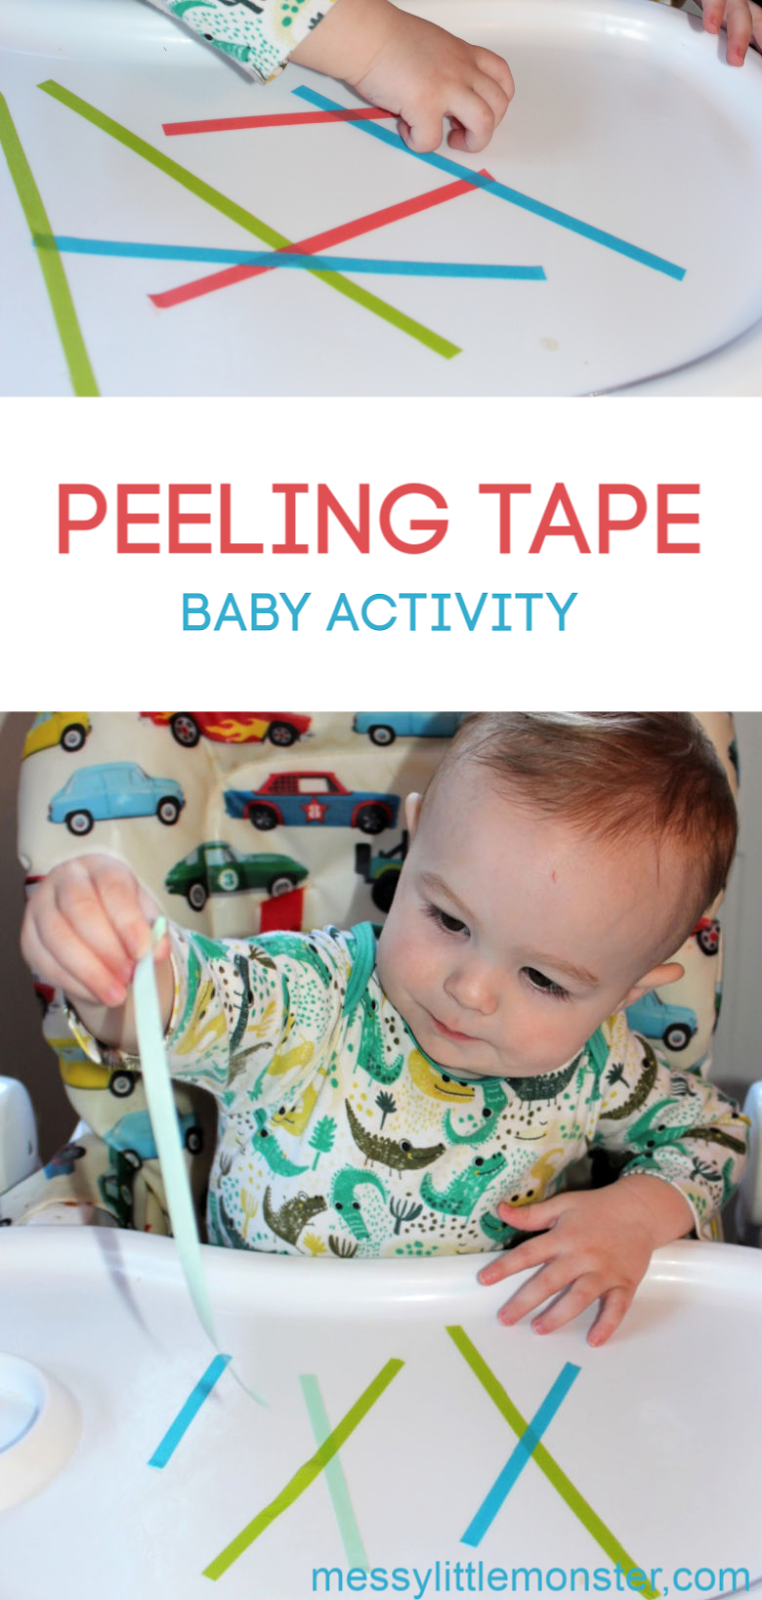 Peeling tape fine motor activity. A baby activity that is easy to set up and works on babies pincer grasp. We love easy baby activities like this!